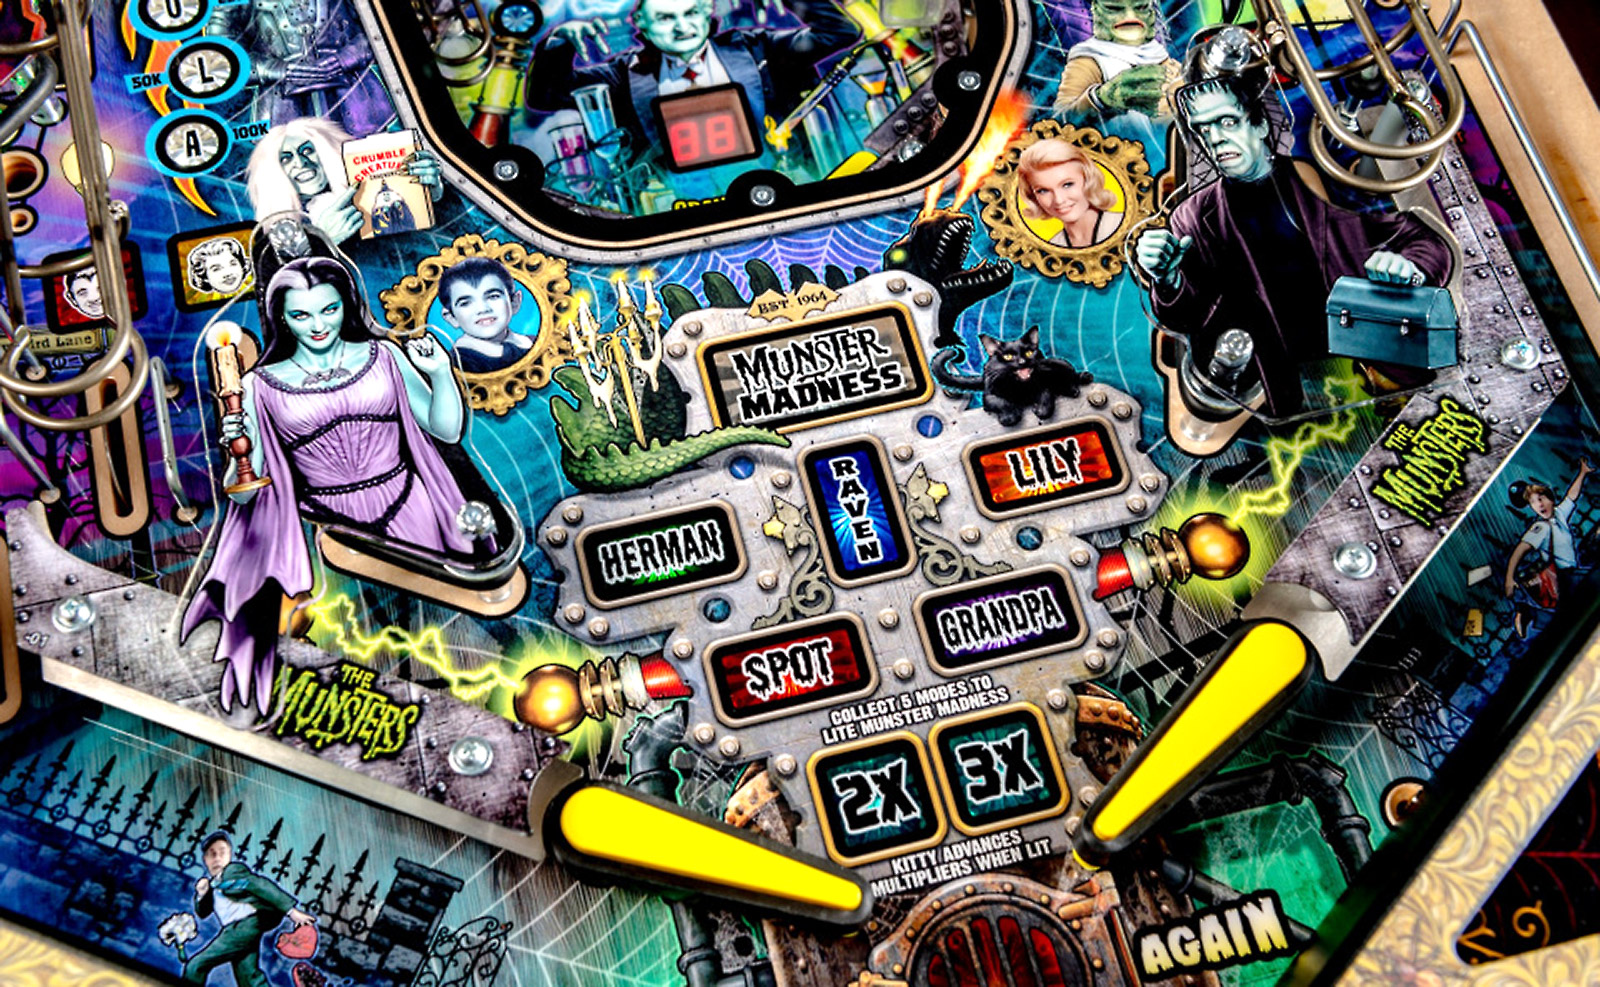 THE MUNSTERS REVEALED – Welcome to Pinball News – First & Free